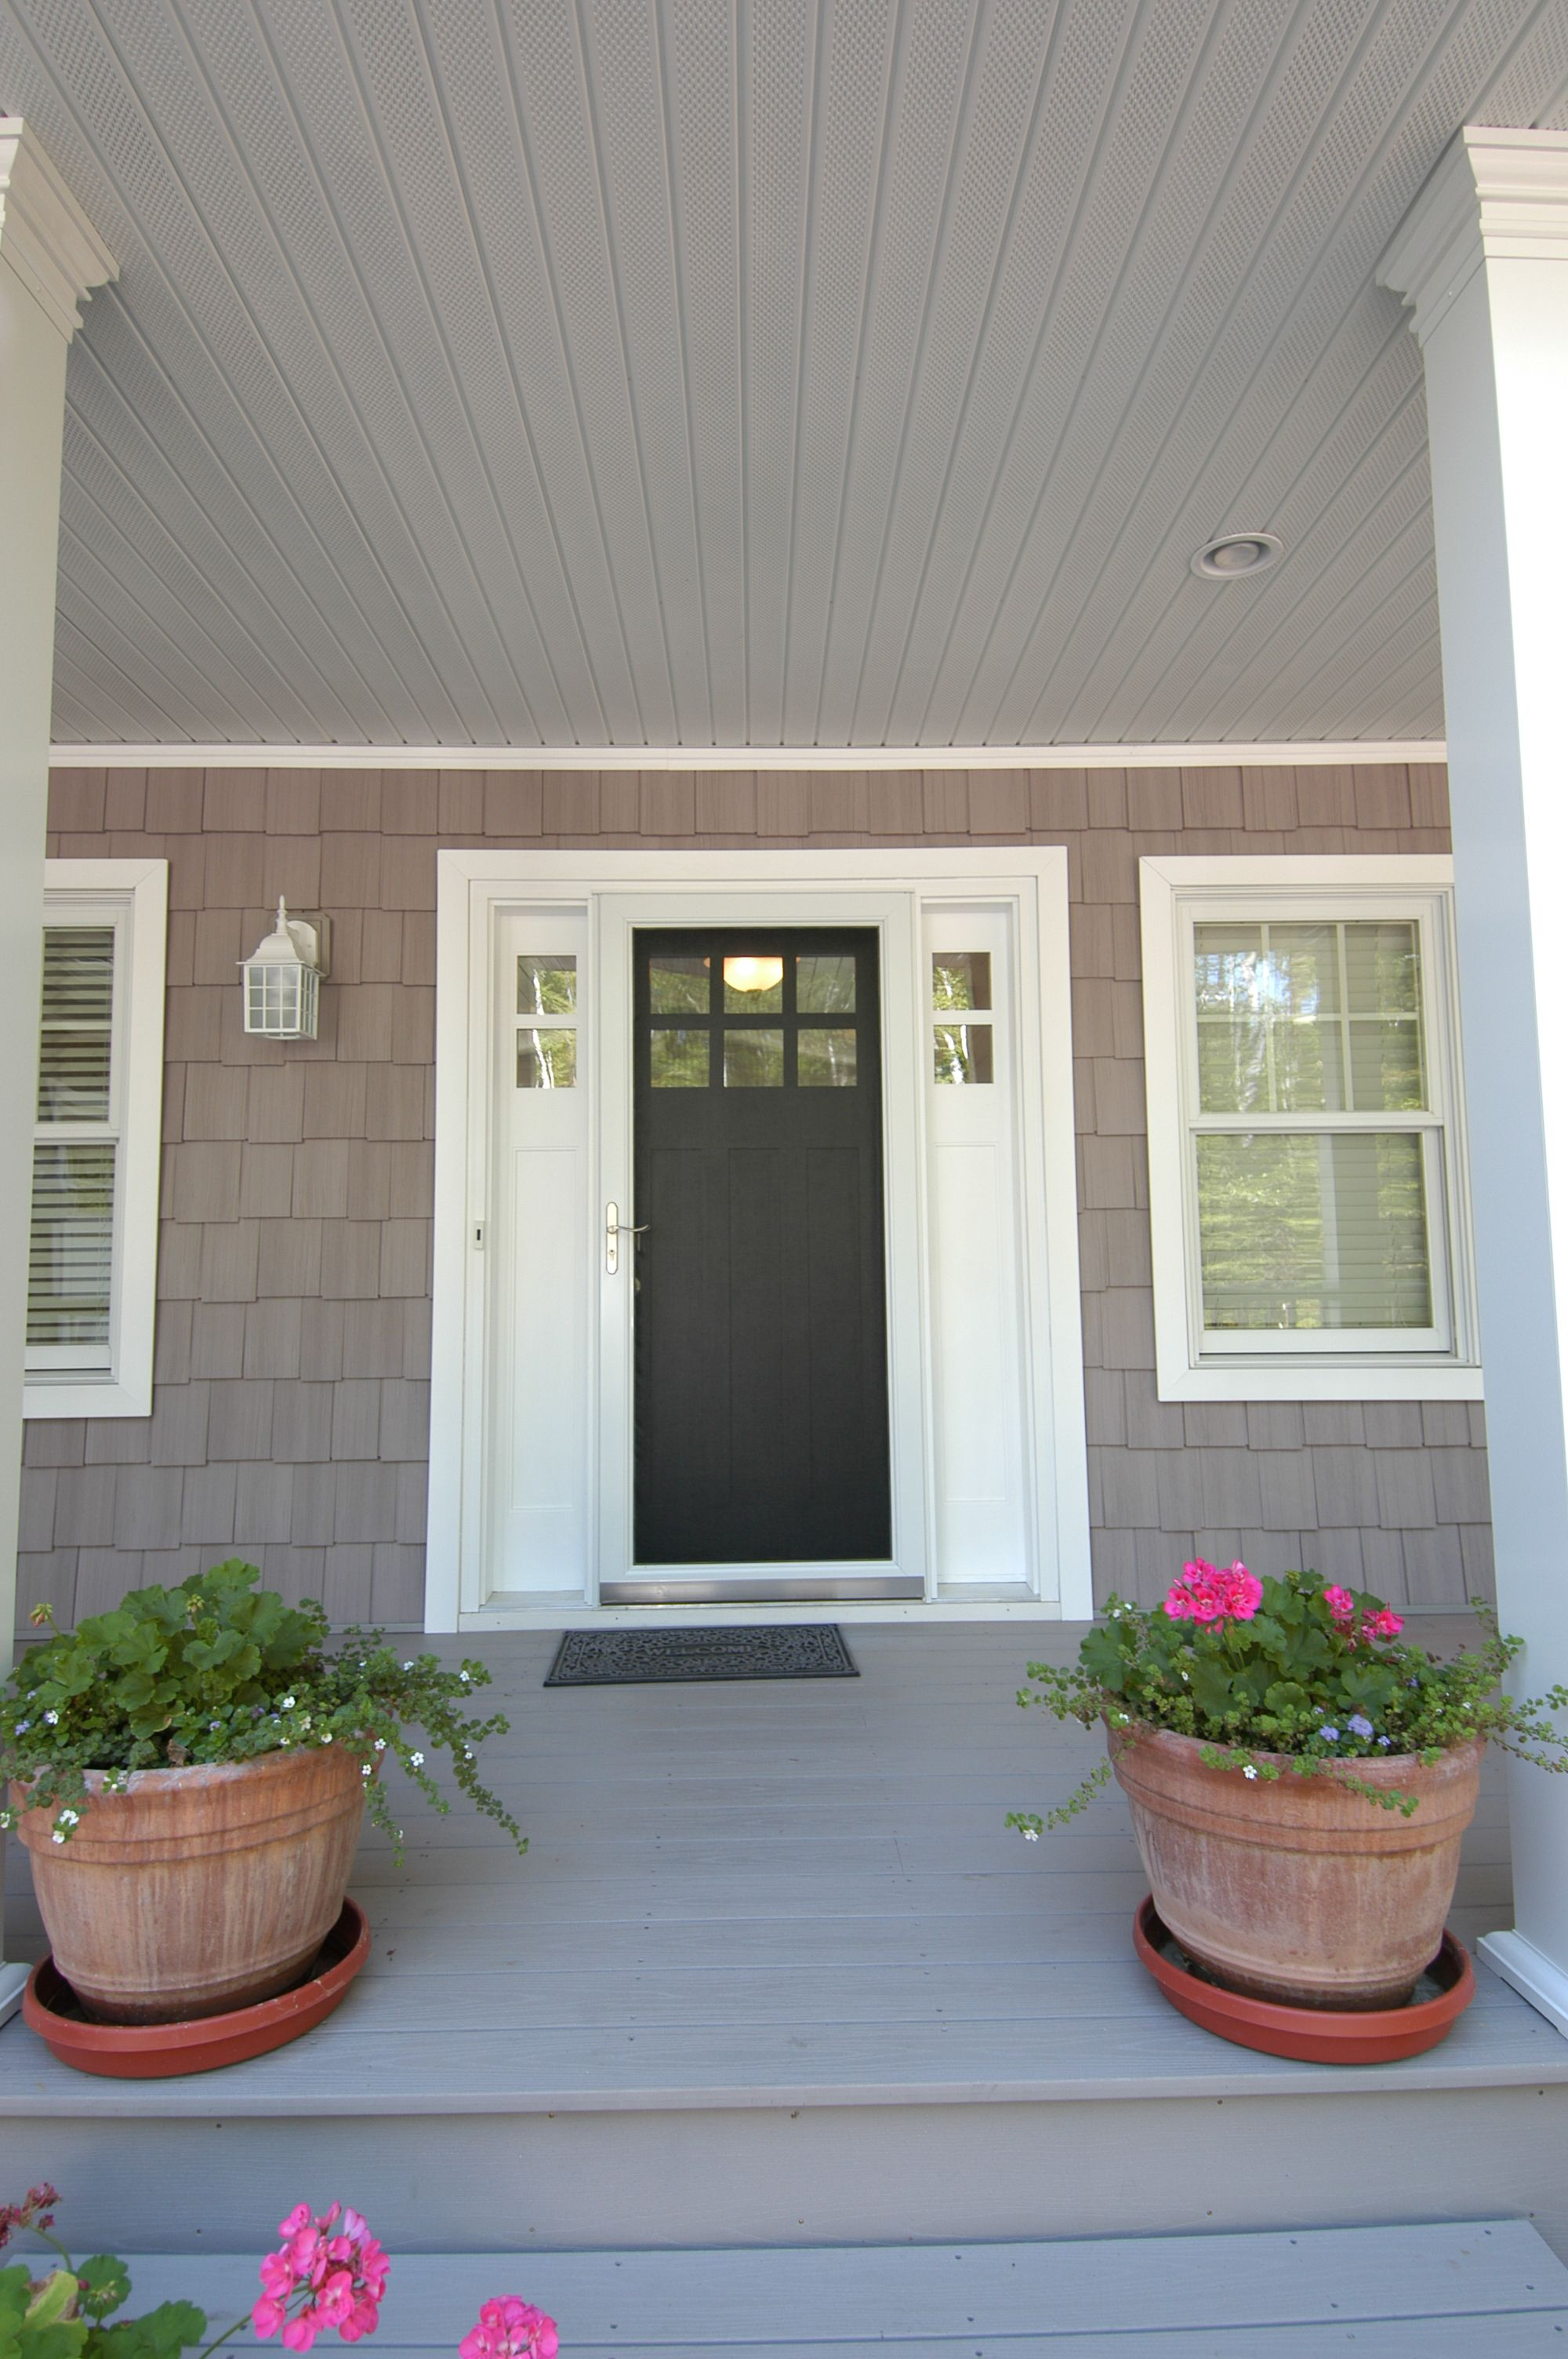 Painted wood craftsman front door with a sidelight on each side painted wood craftsman front door with a sidelight on each side eventshaper